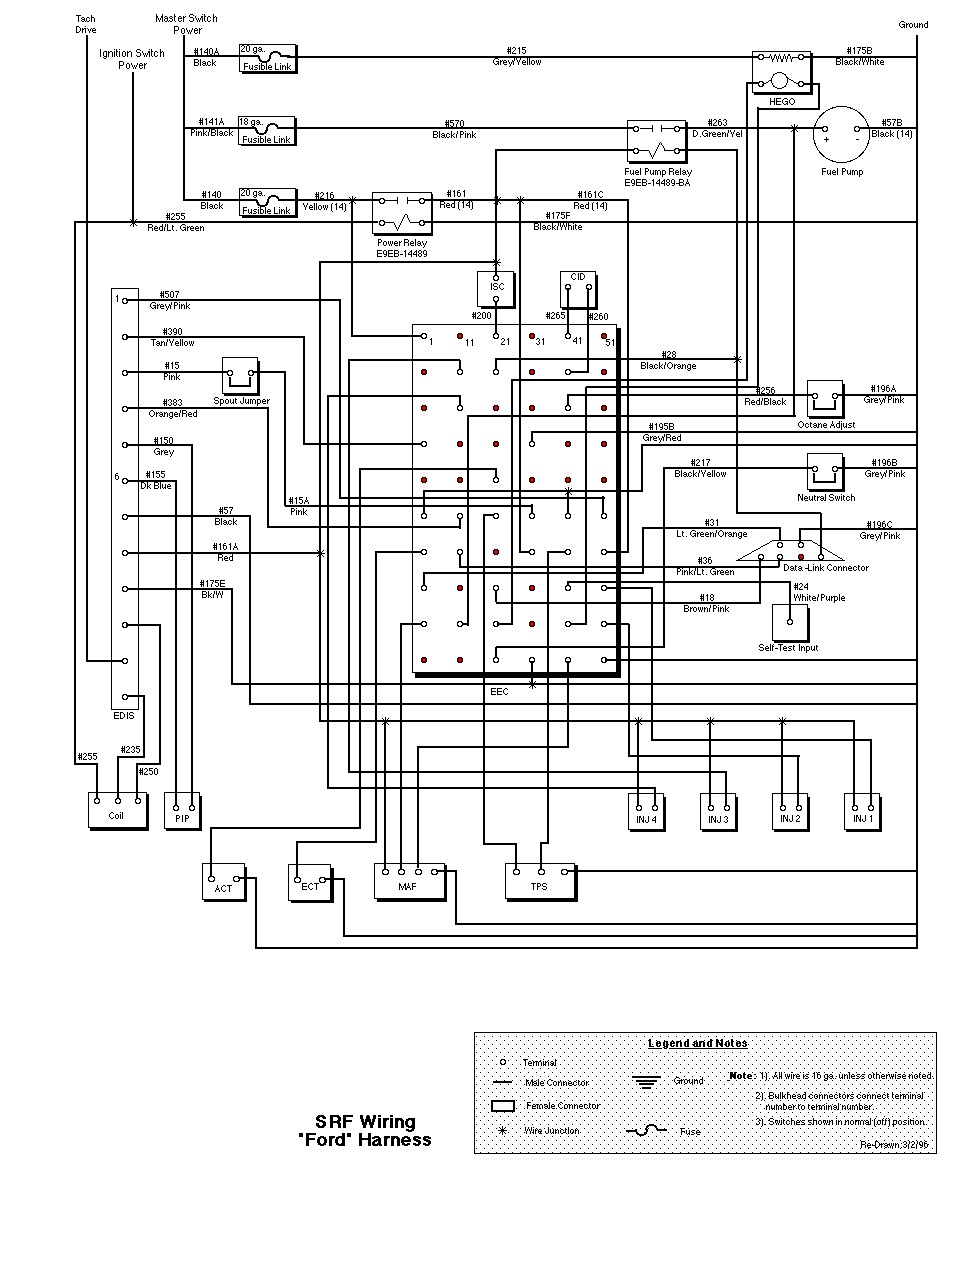 Wiring Diagram 1995 Ford L8000, Wiring, Free Engine Image